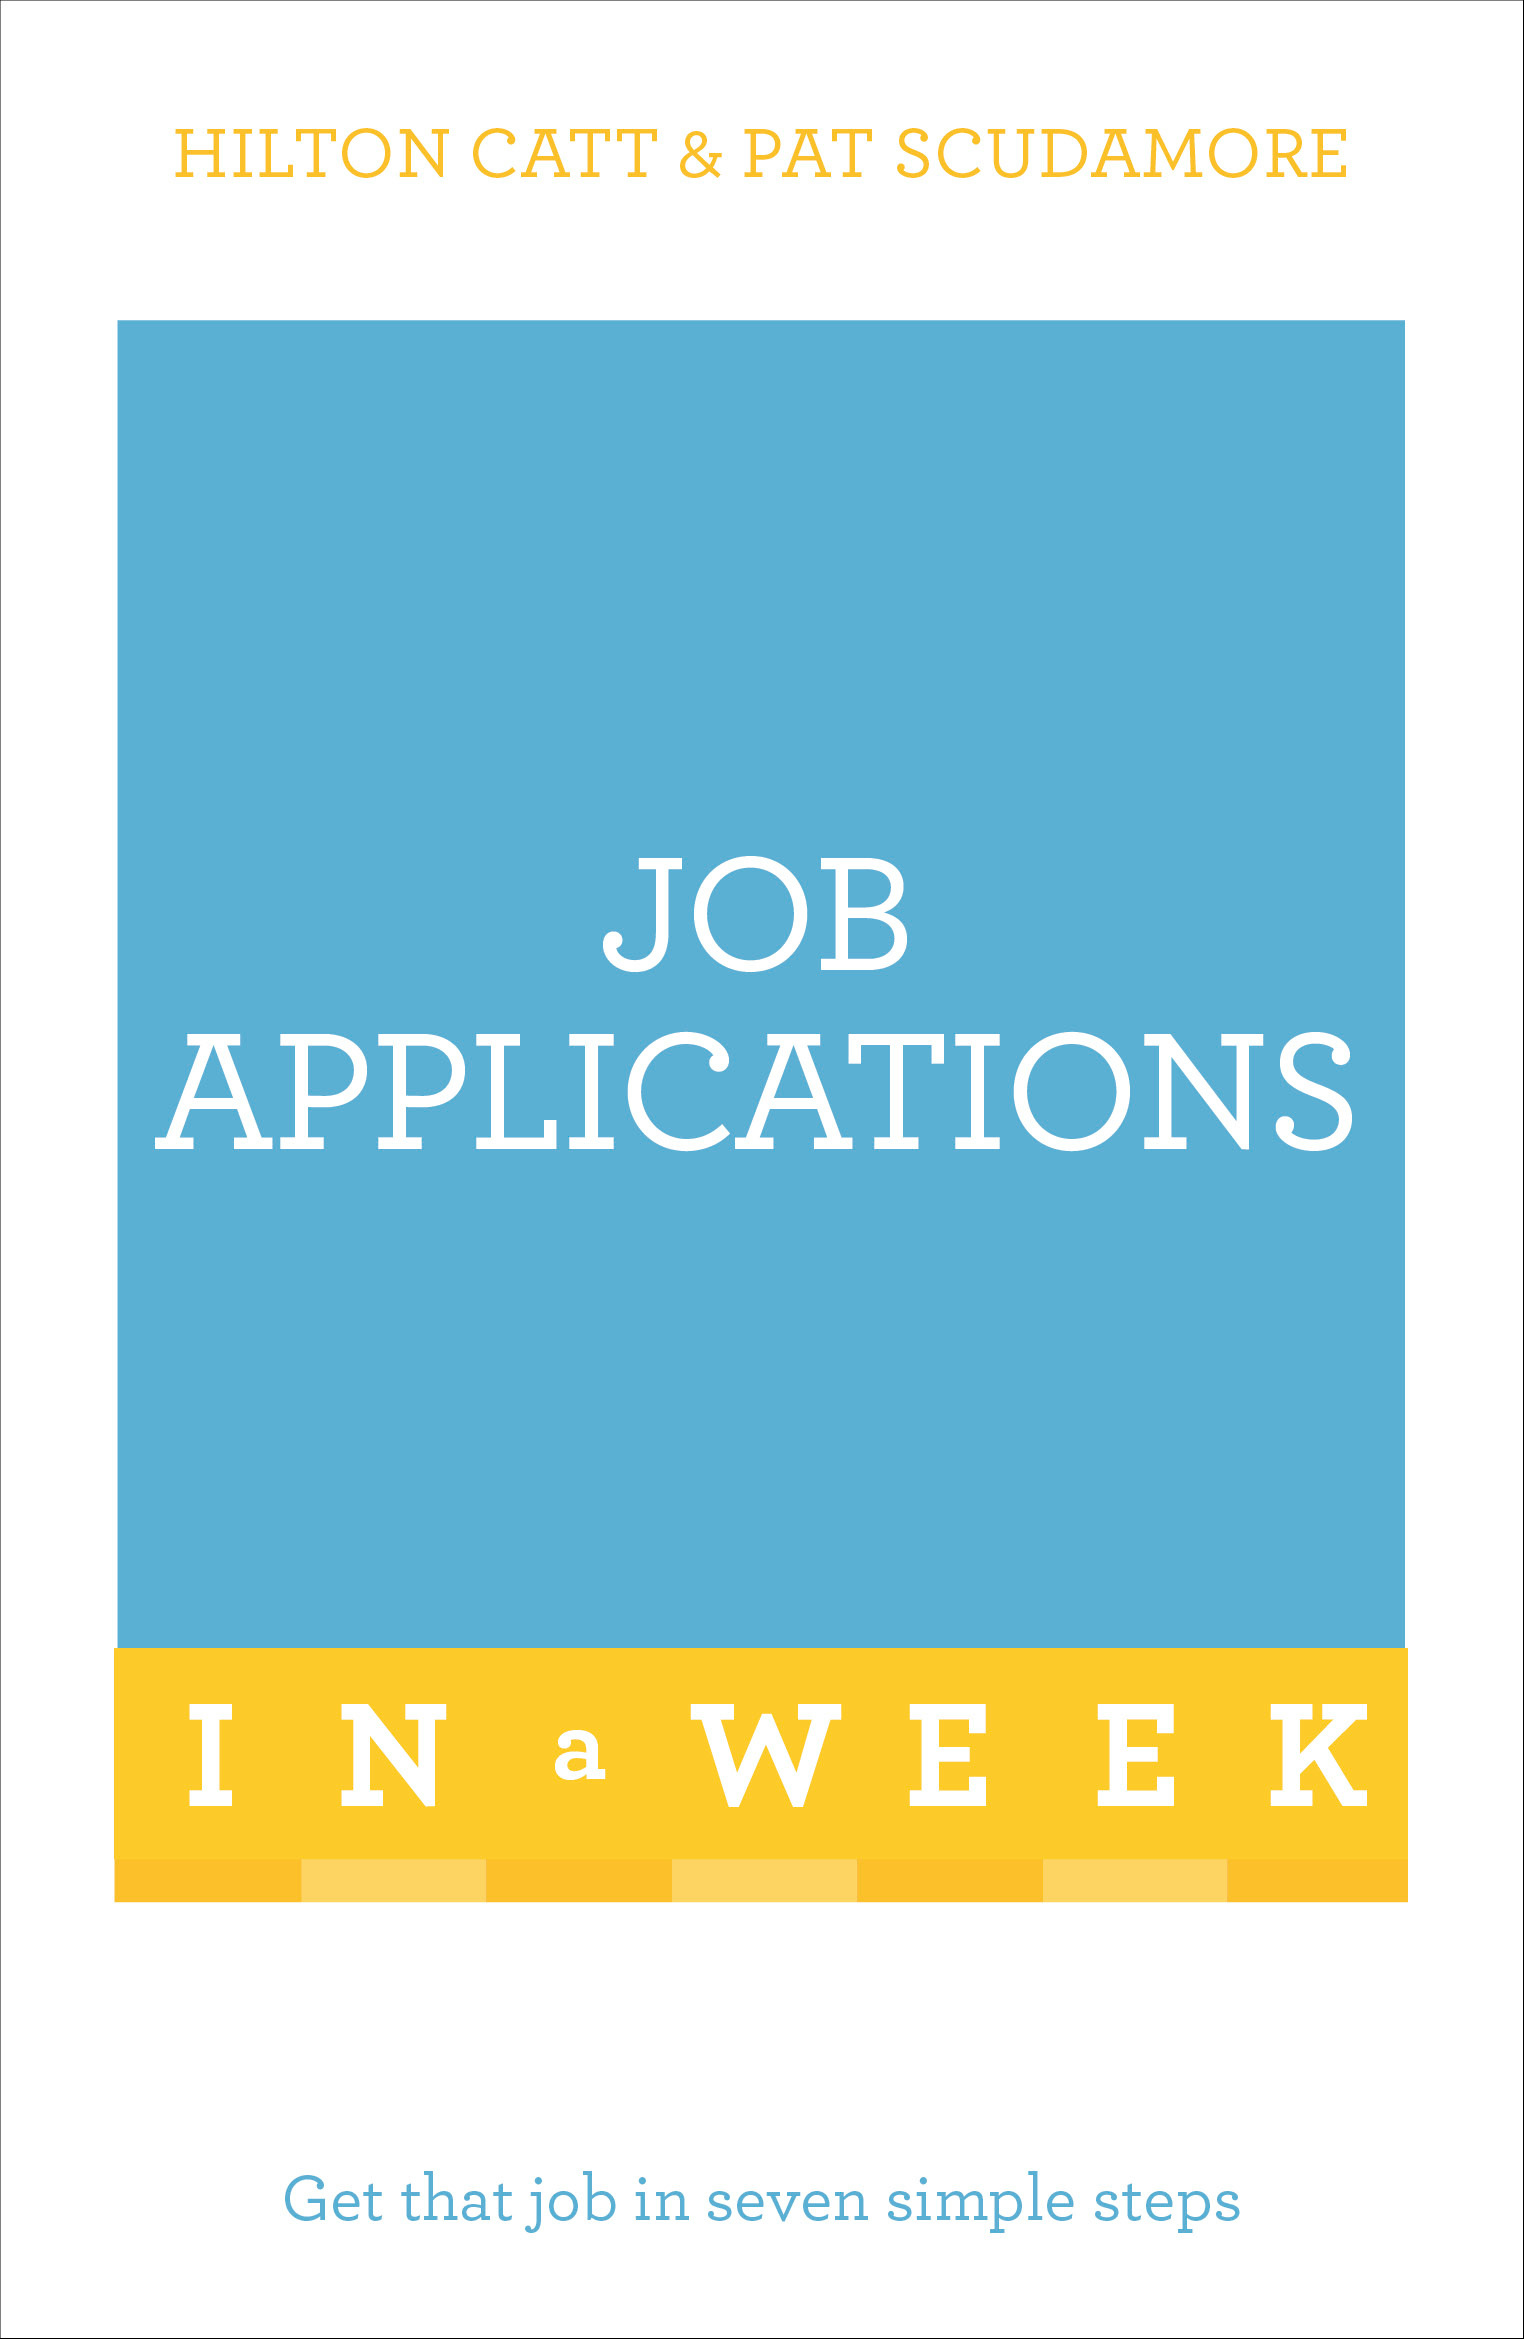 job applications in a week get that job in seven simple steps by